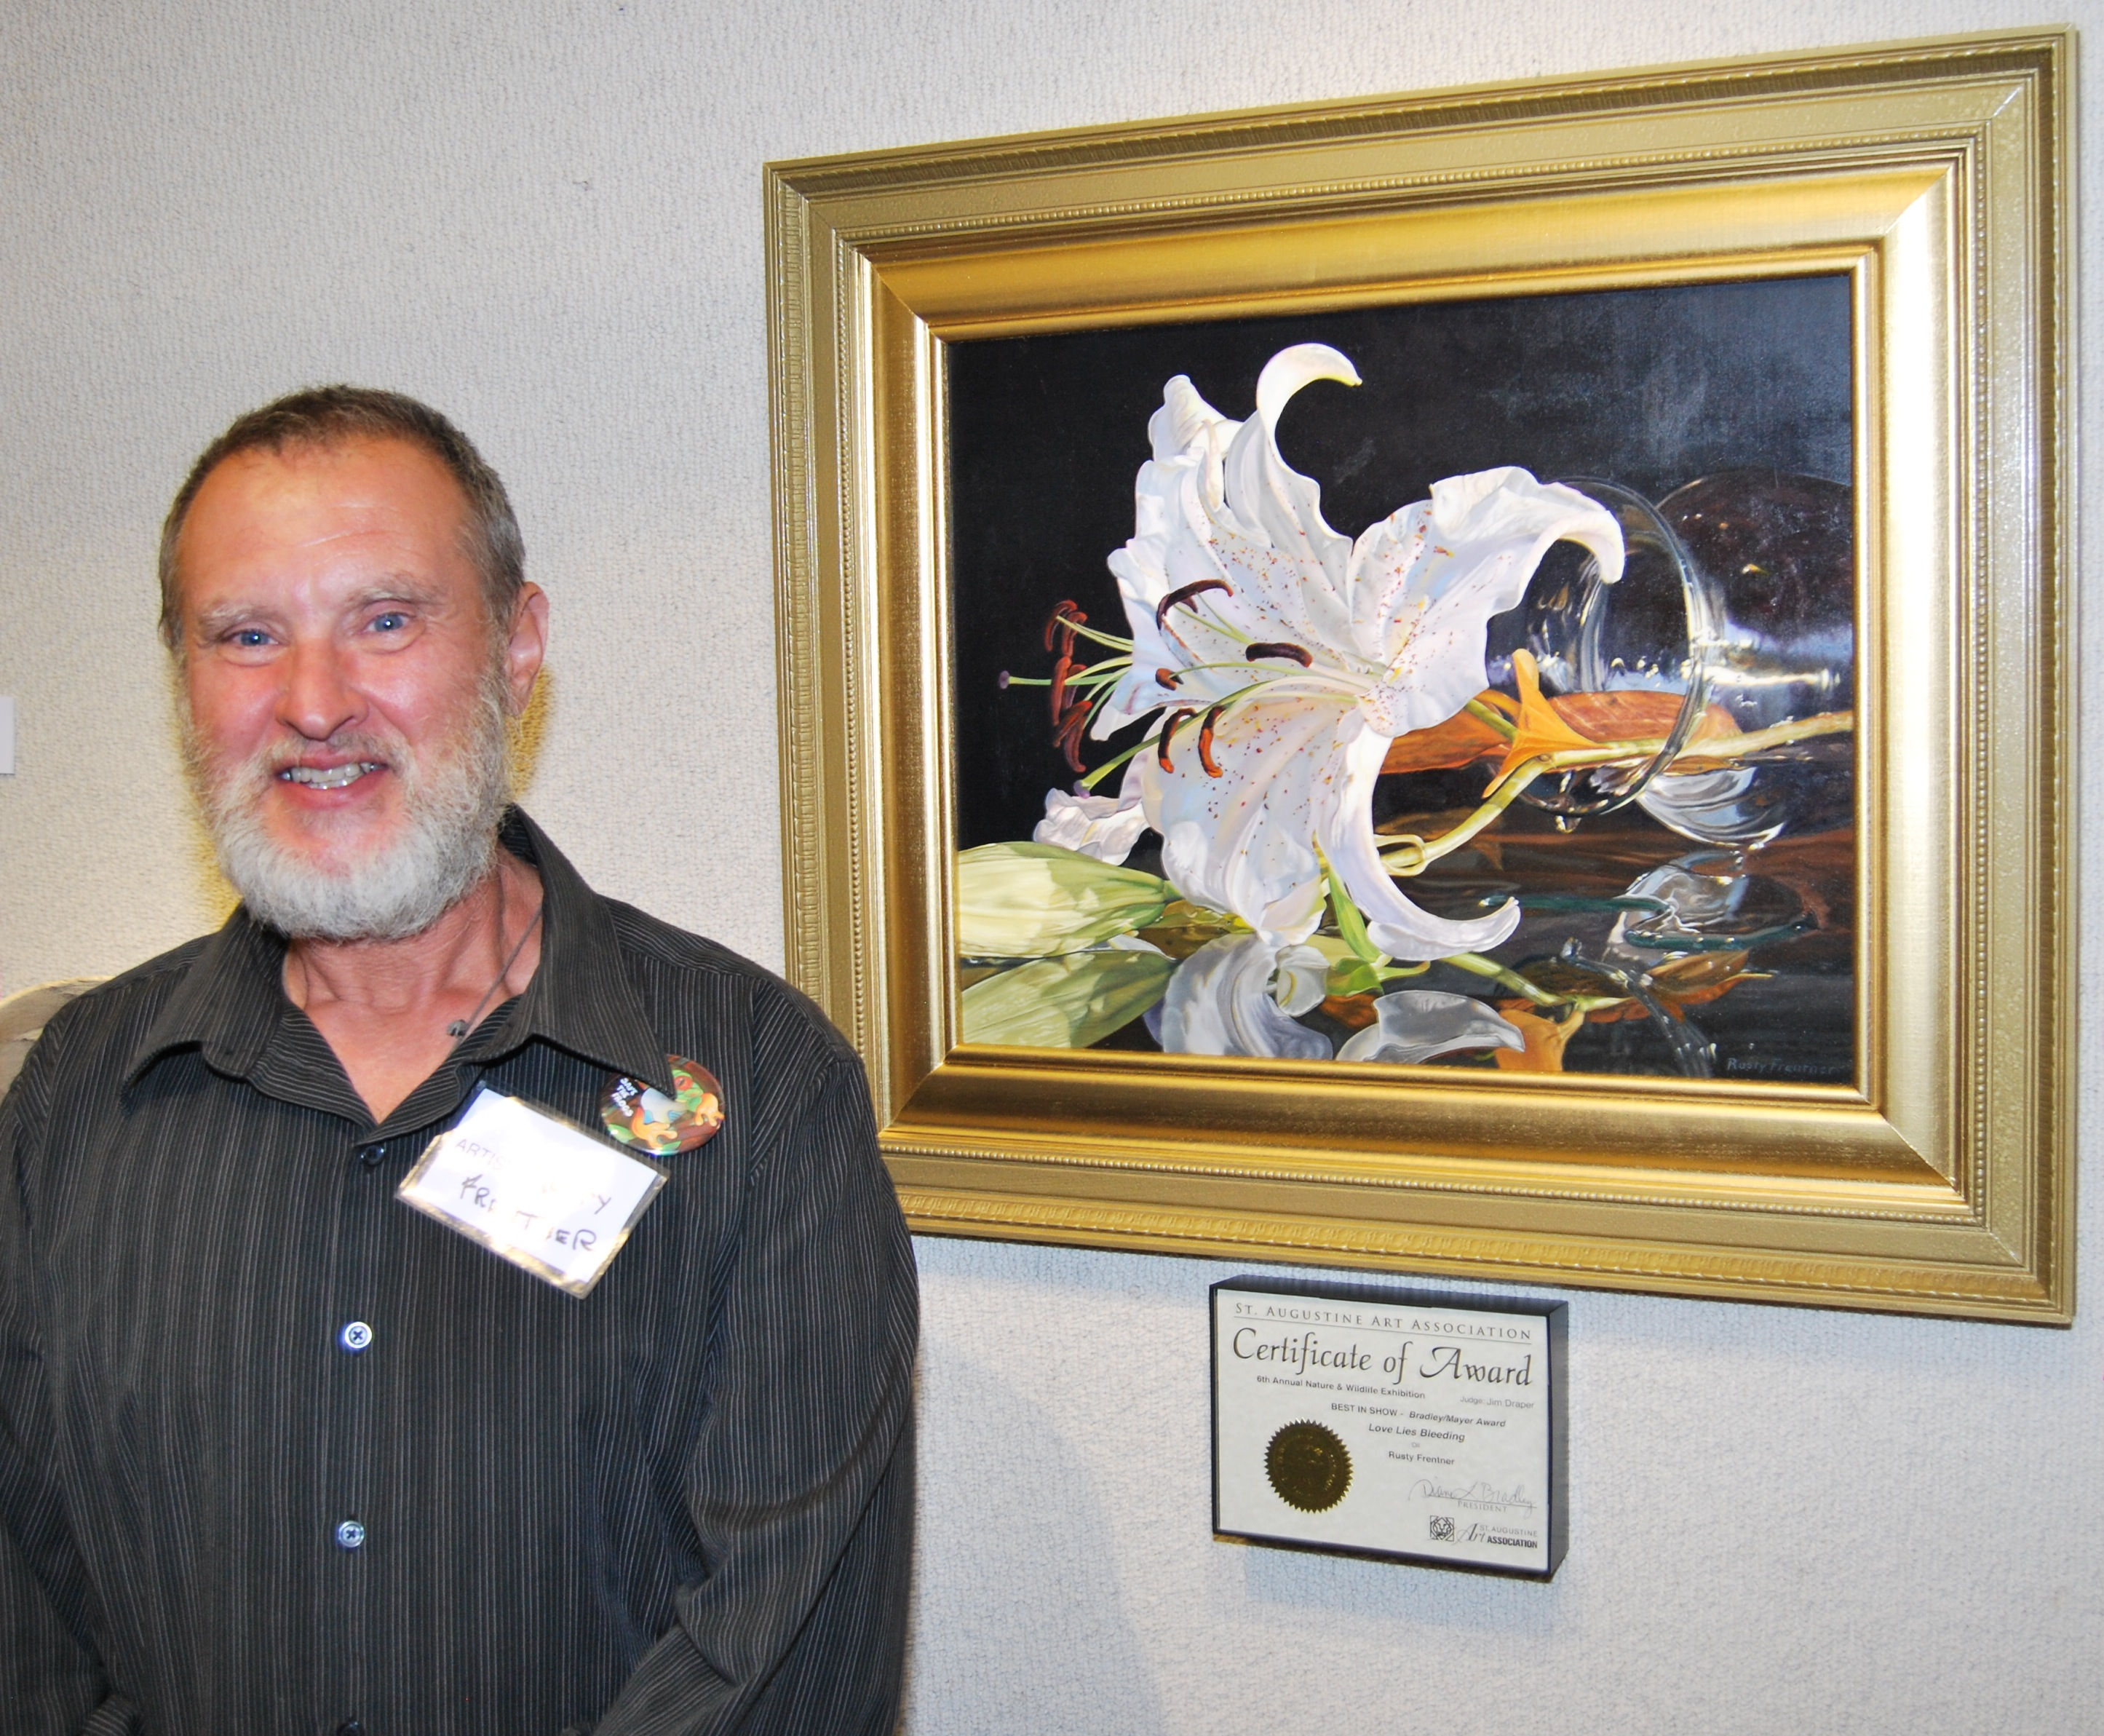 Rusty Frentner with Love Lies Bleeding, the 6th Annual Nature & Wildlife Exhibit Best in Show Winner (Photo by Laine Quinn)